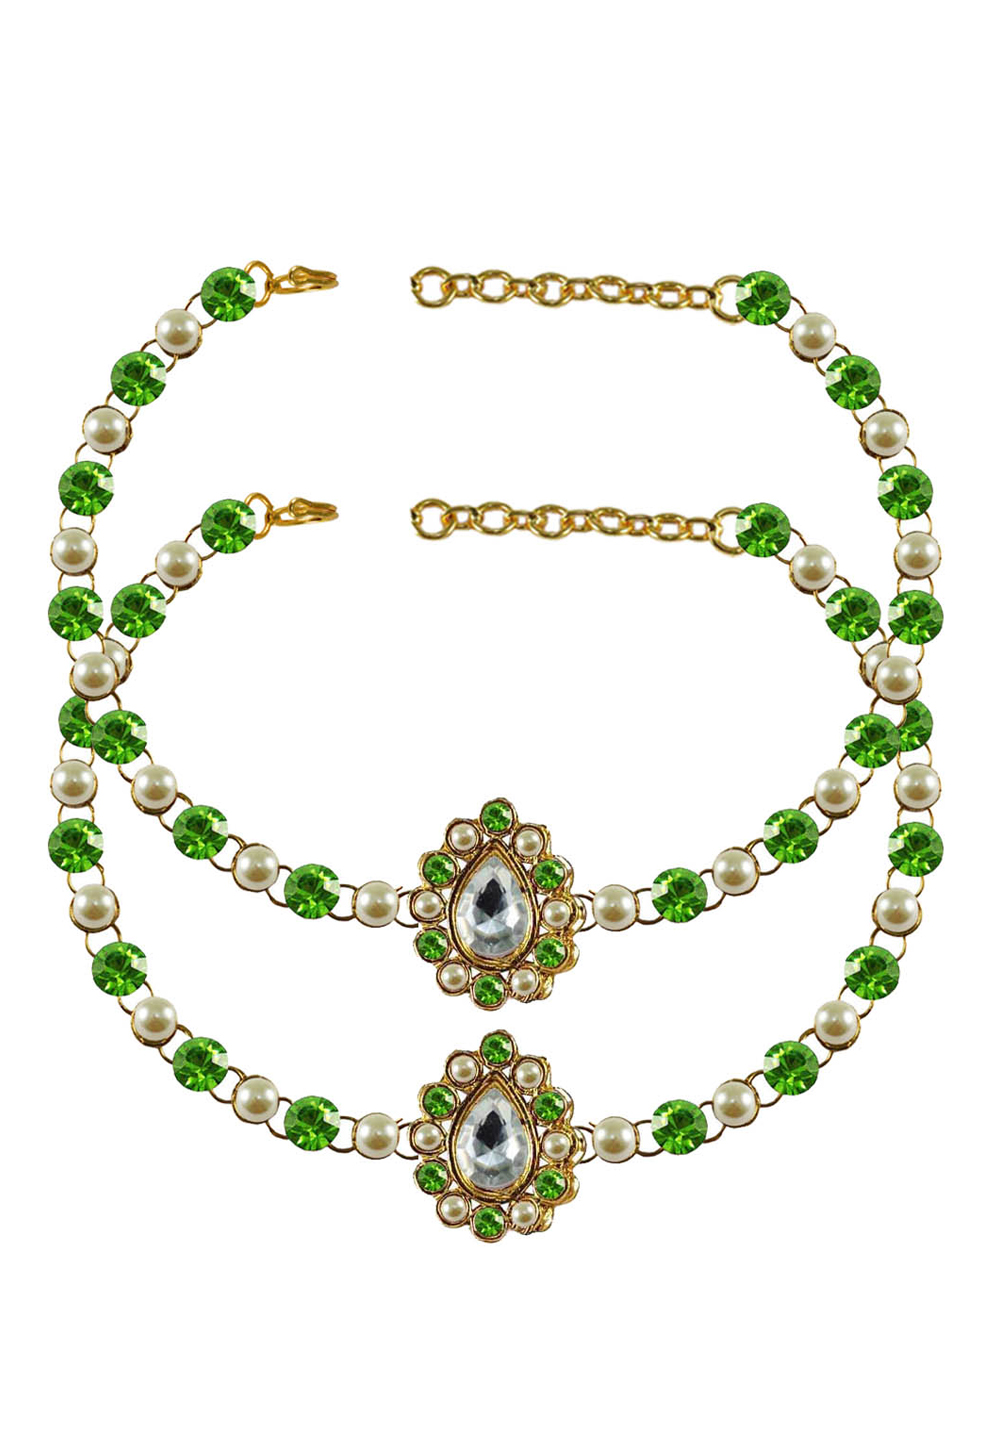 Green Brass Gold Plated Anklets 171360